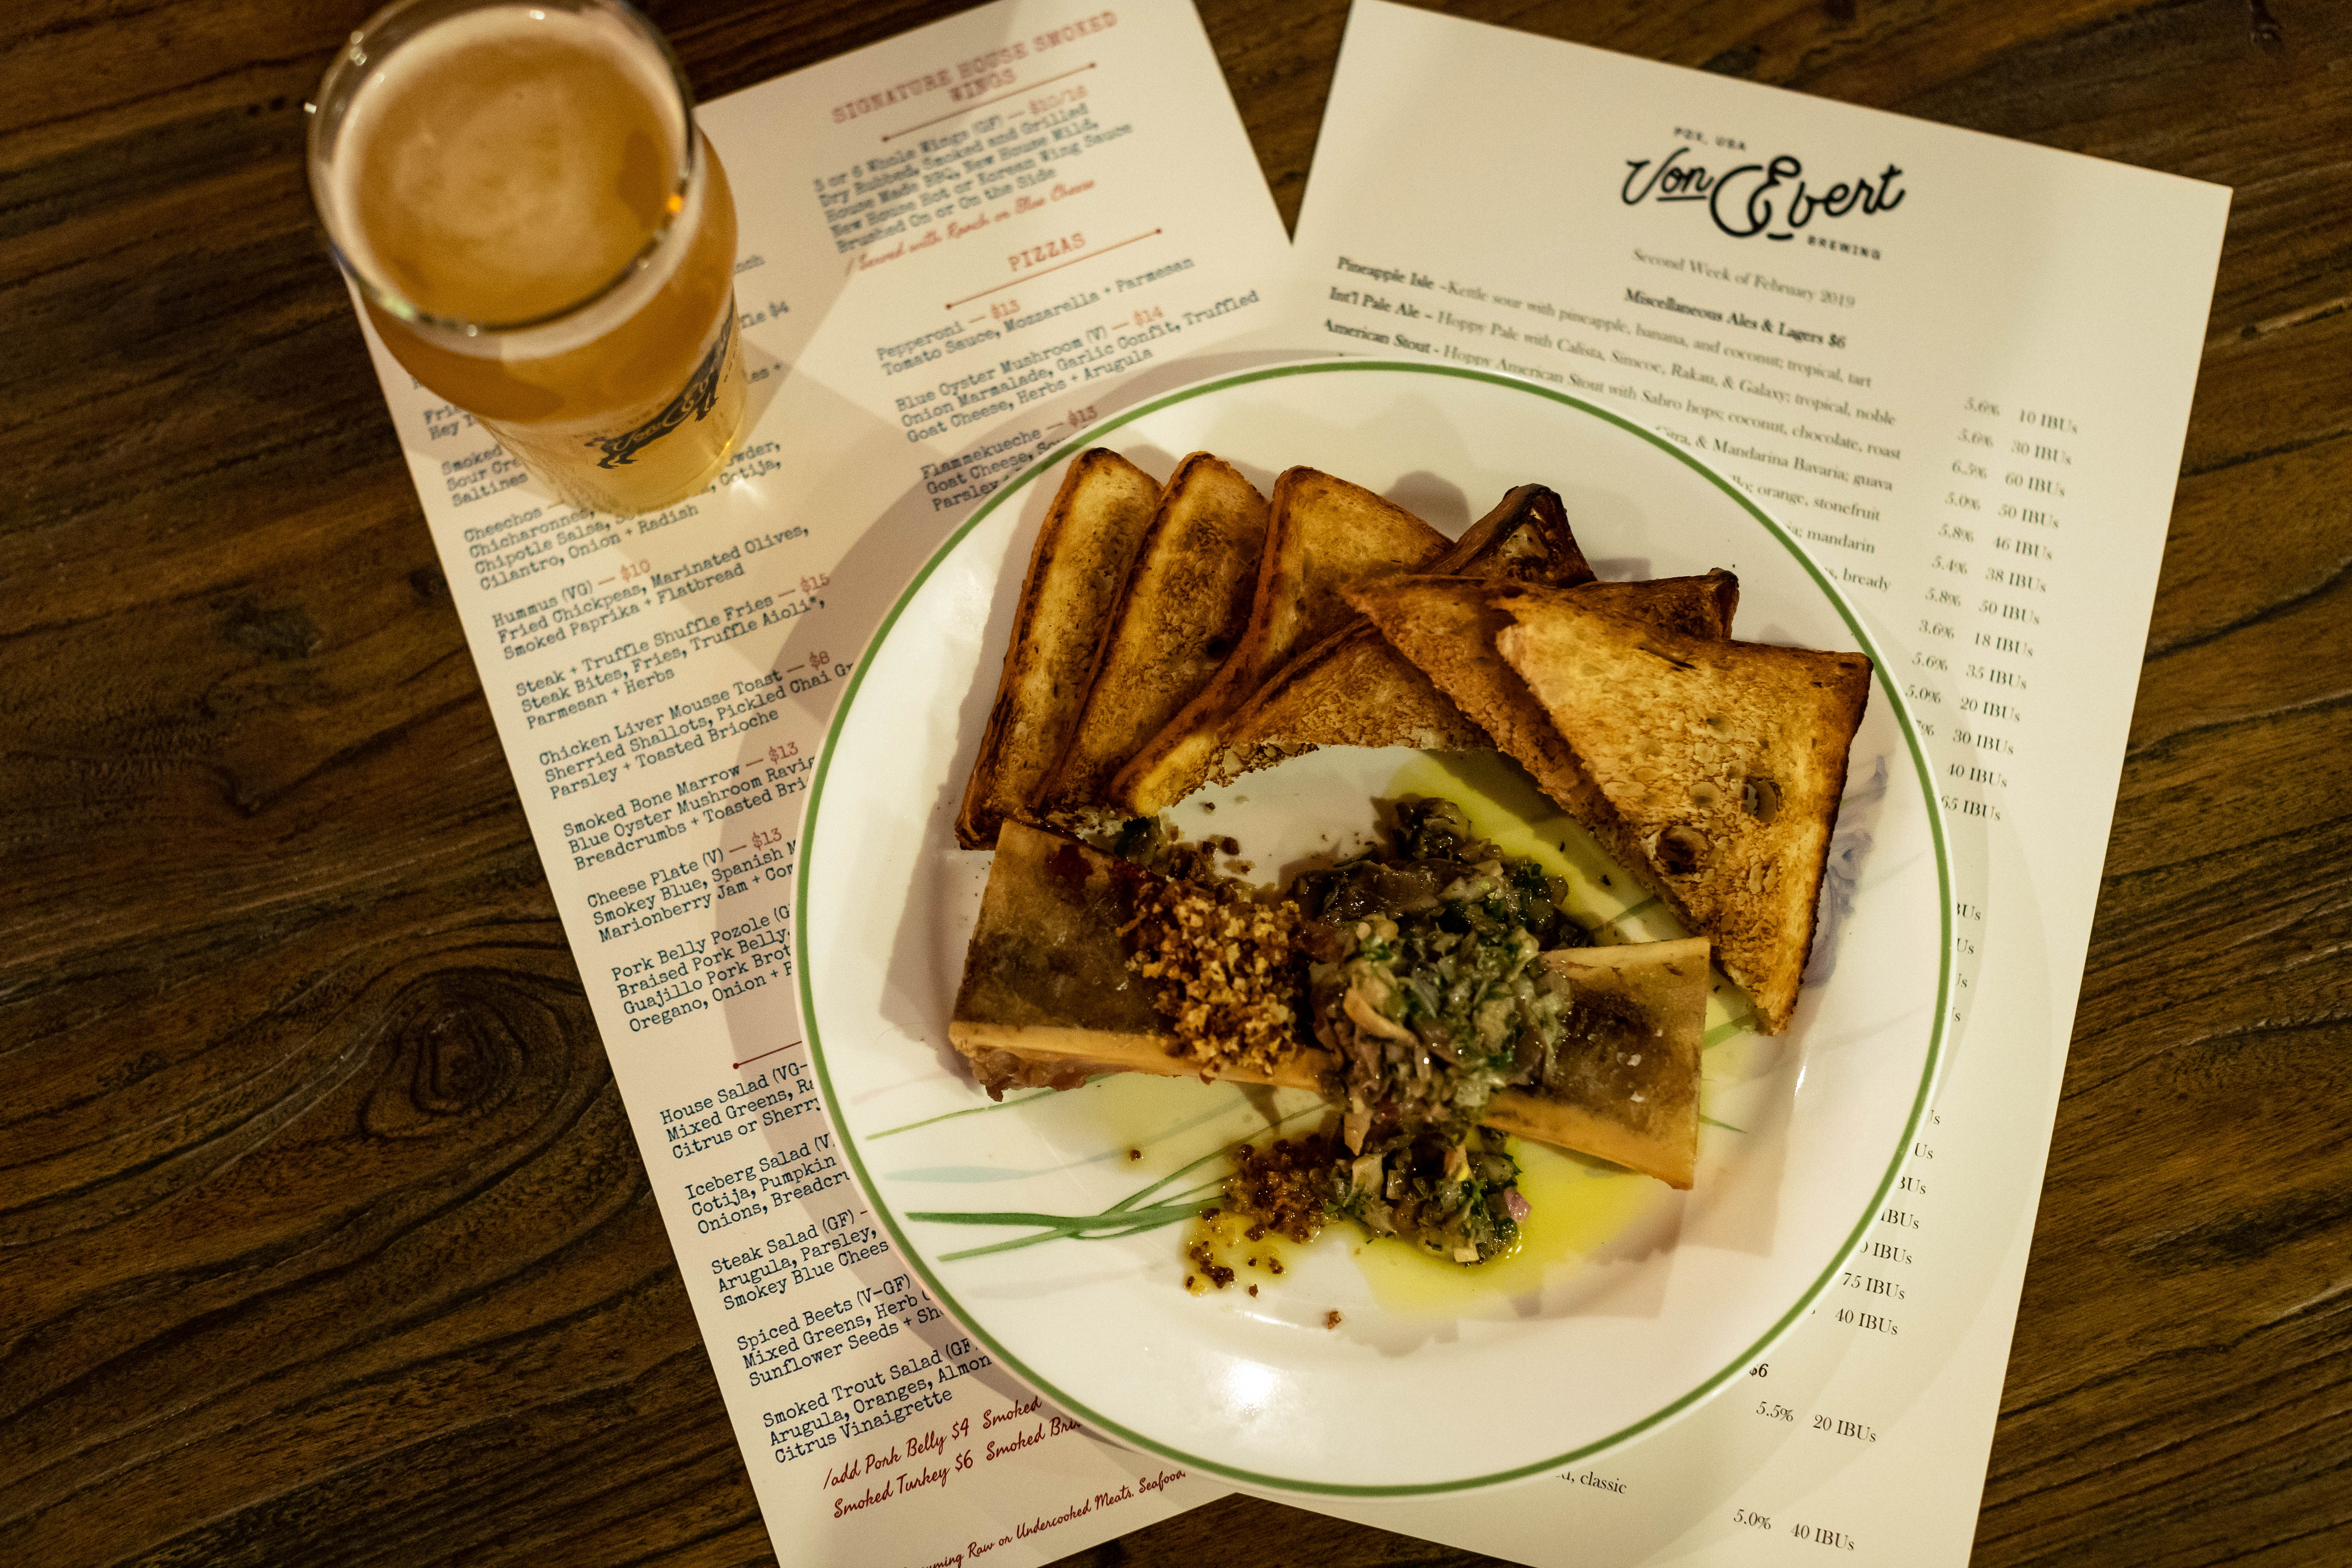 The food and beer menu at Von Ebert Brewing. (image courtesy of Von Ebert Brewing)